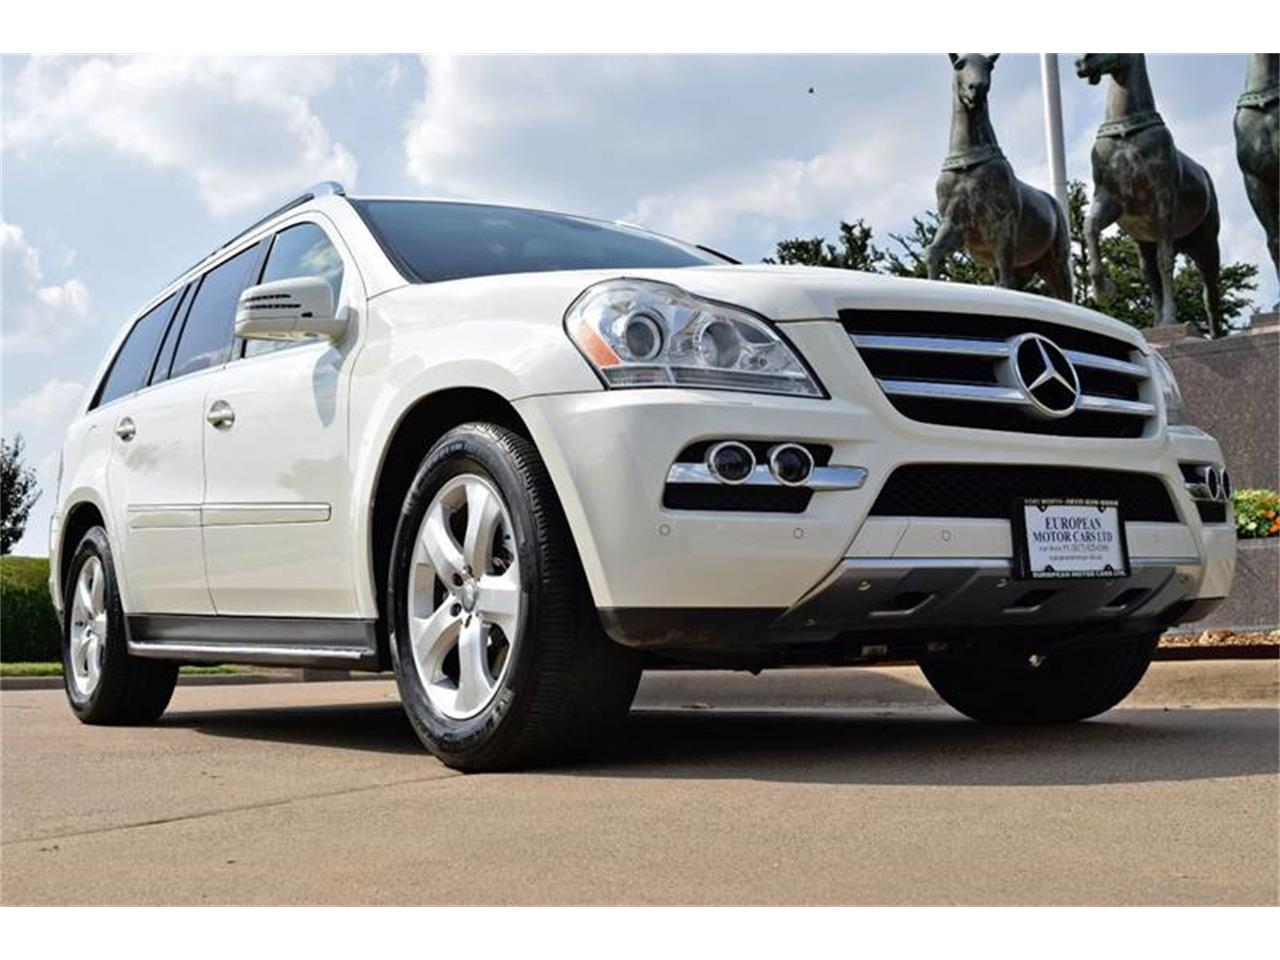 for sale 2011 mercedes-benz gl450 in fort worth, texas cars - fort worth, tx at geebo